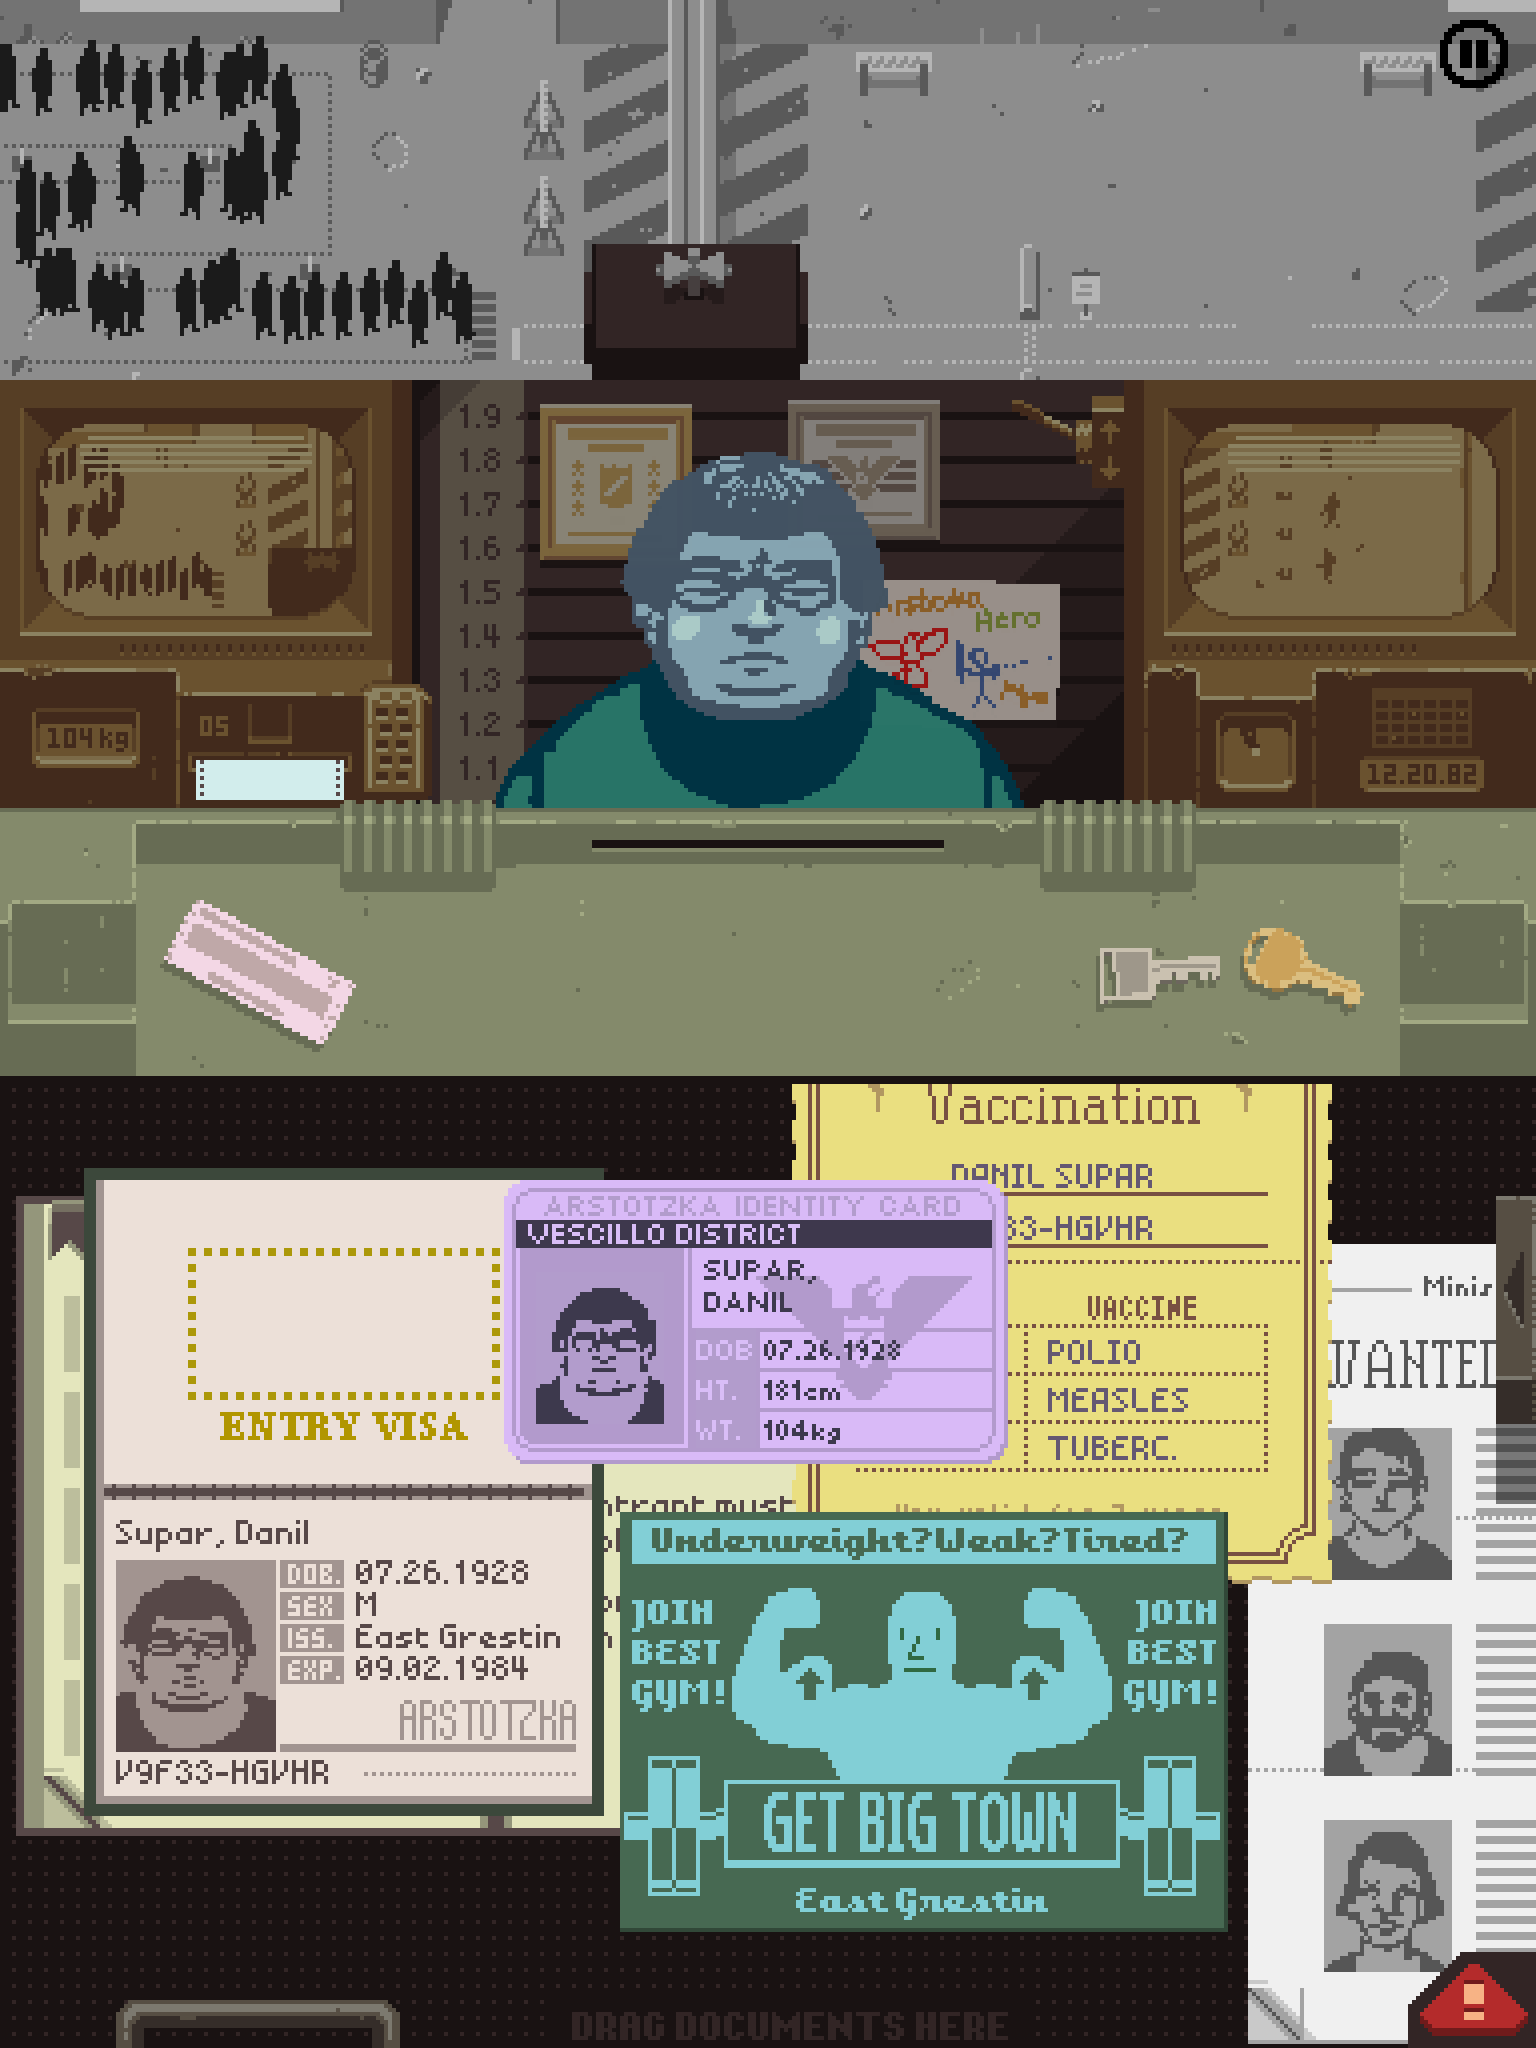 download papers please ios free